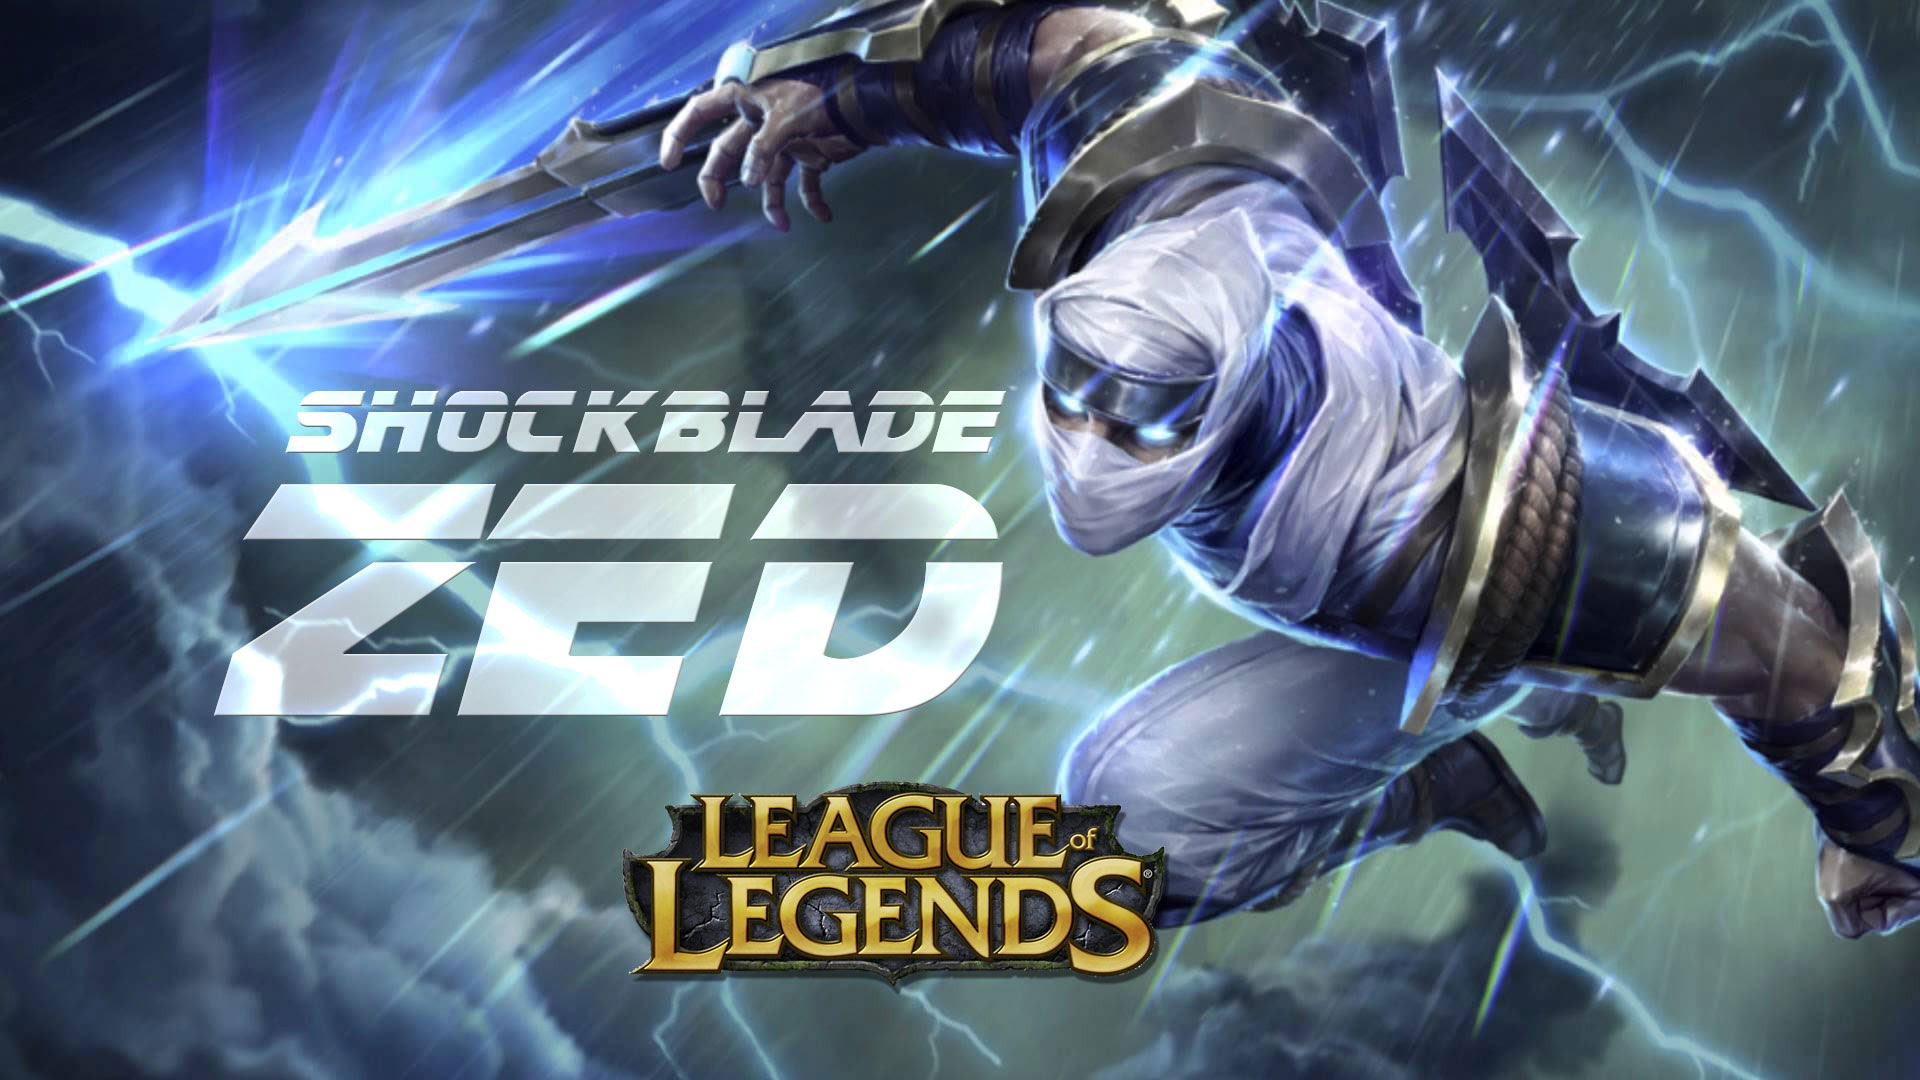 League Of Legends Shockblade Zed Wallpapers Hd Resolution Is Cool Wallpapers